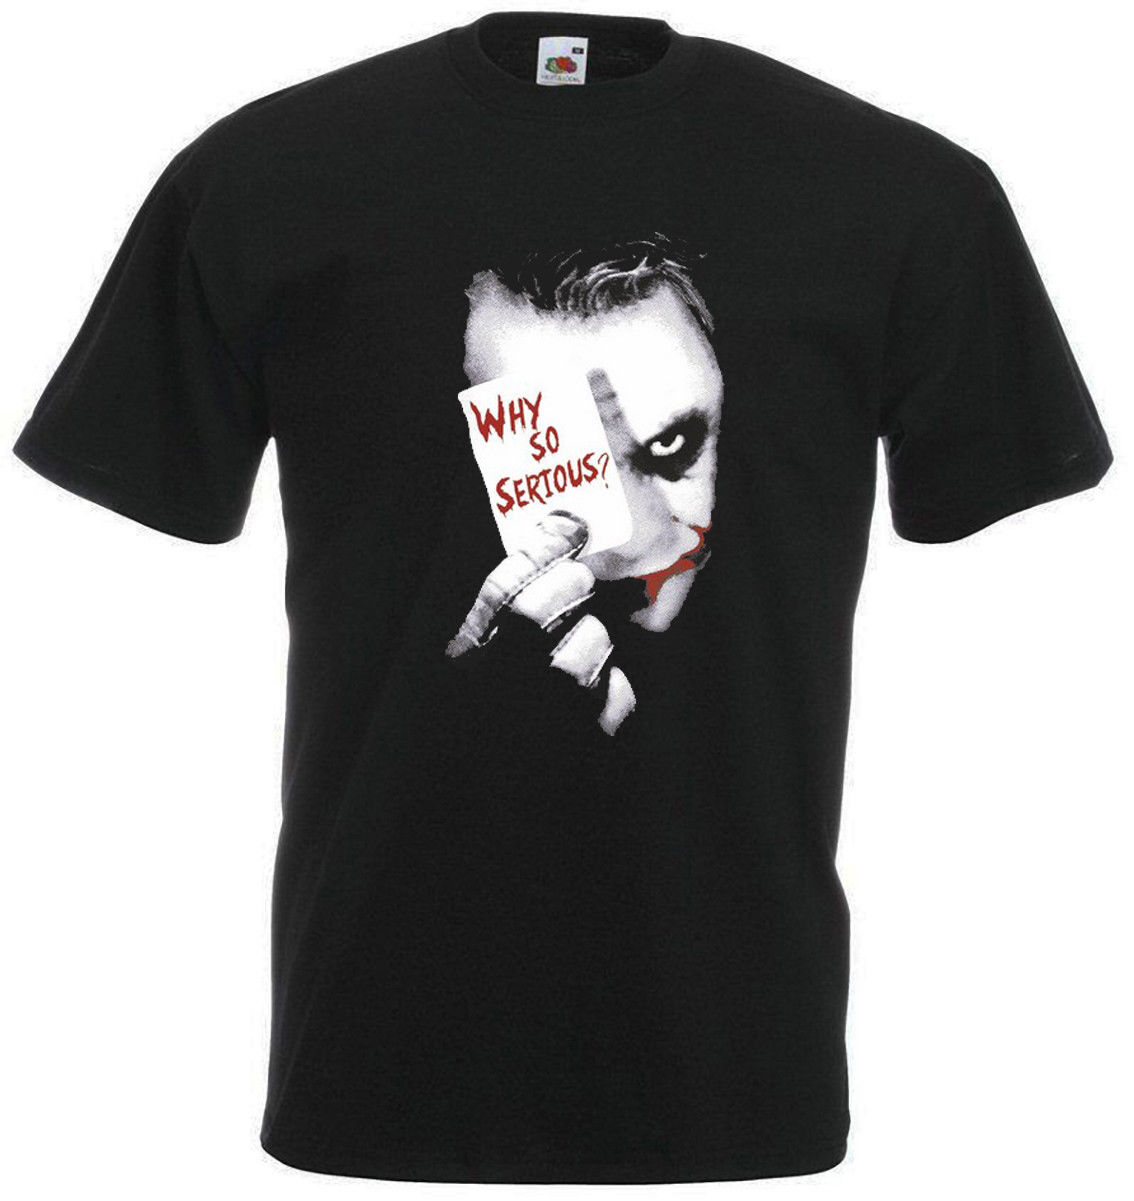 JOCKER WHY SO SERIOUS T-Shirt Tee New